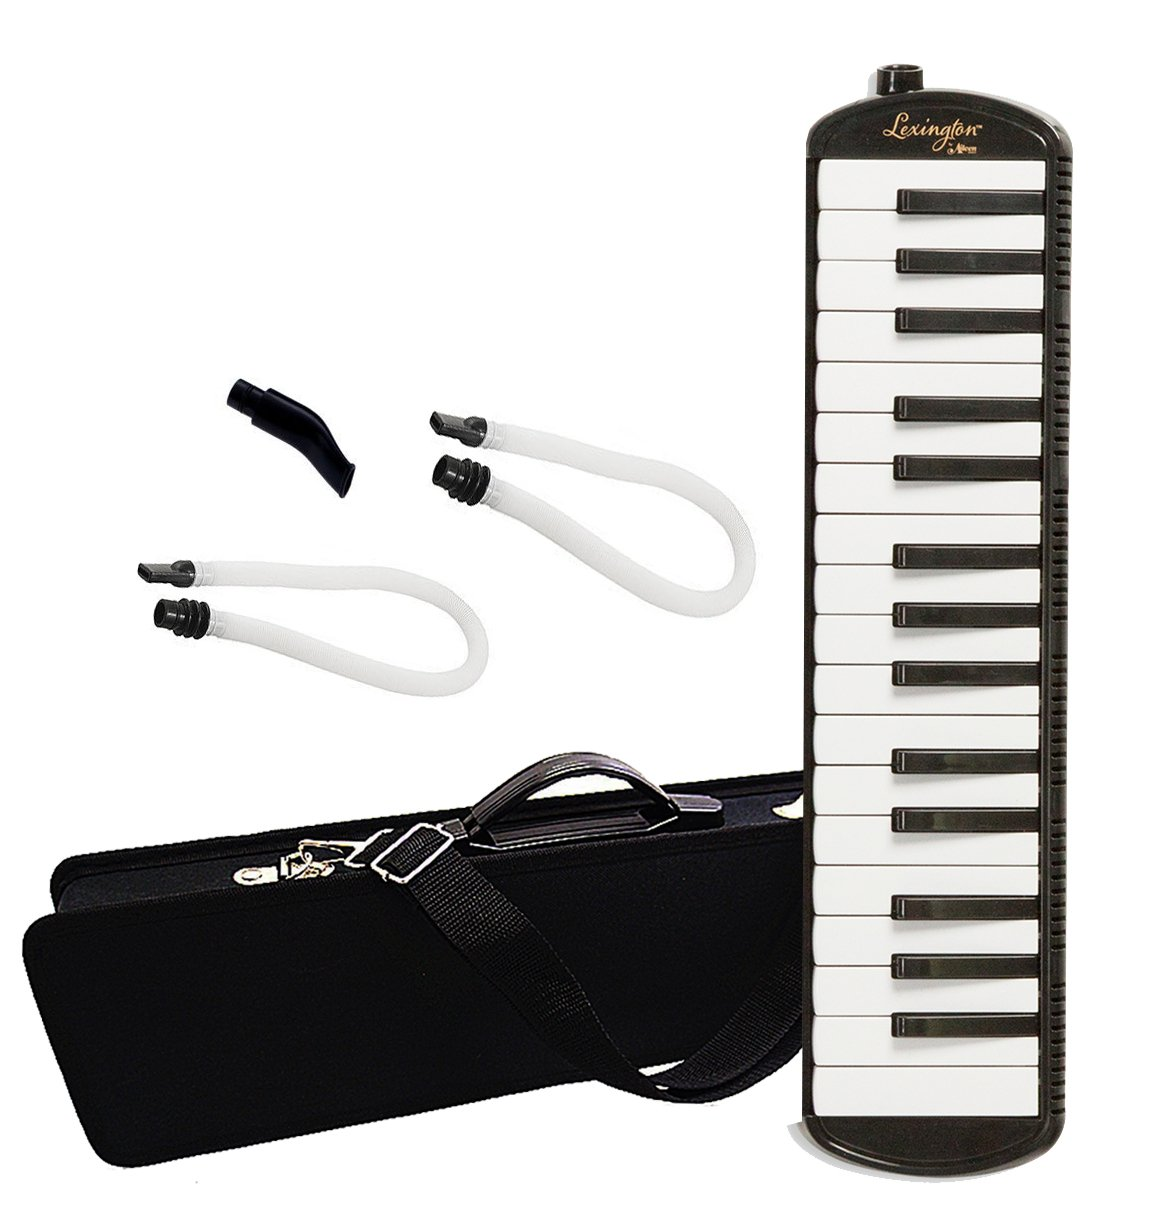 32 Piano Keys Melodica Made of Bronze Base and Reed, Package Includes 1 Carrying Case,1 Short, 2 Long Mouthpieces by Aileen (Image #9)